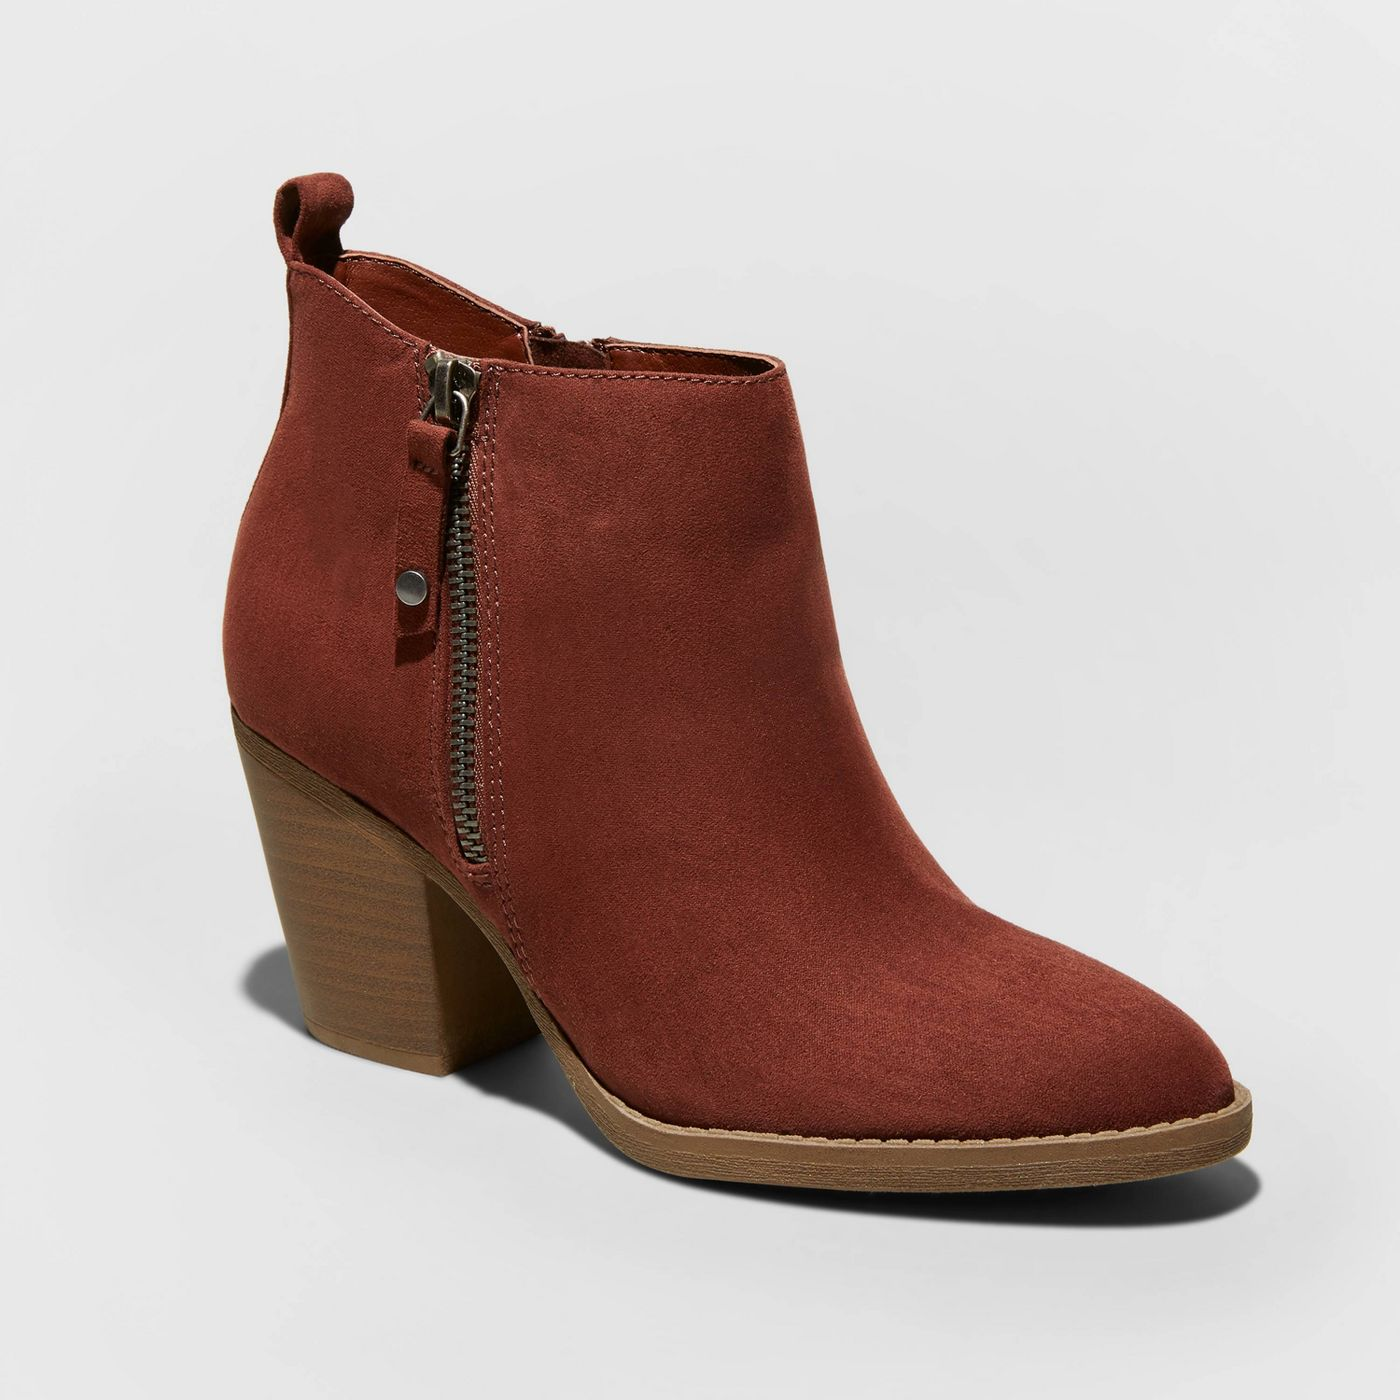 Burgundy Boot for fall 2019 popular trends.